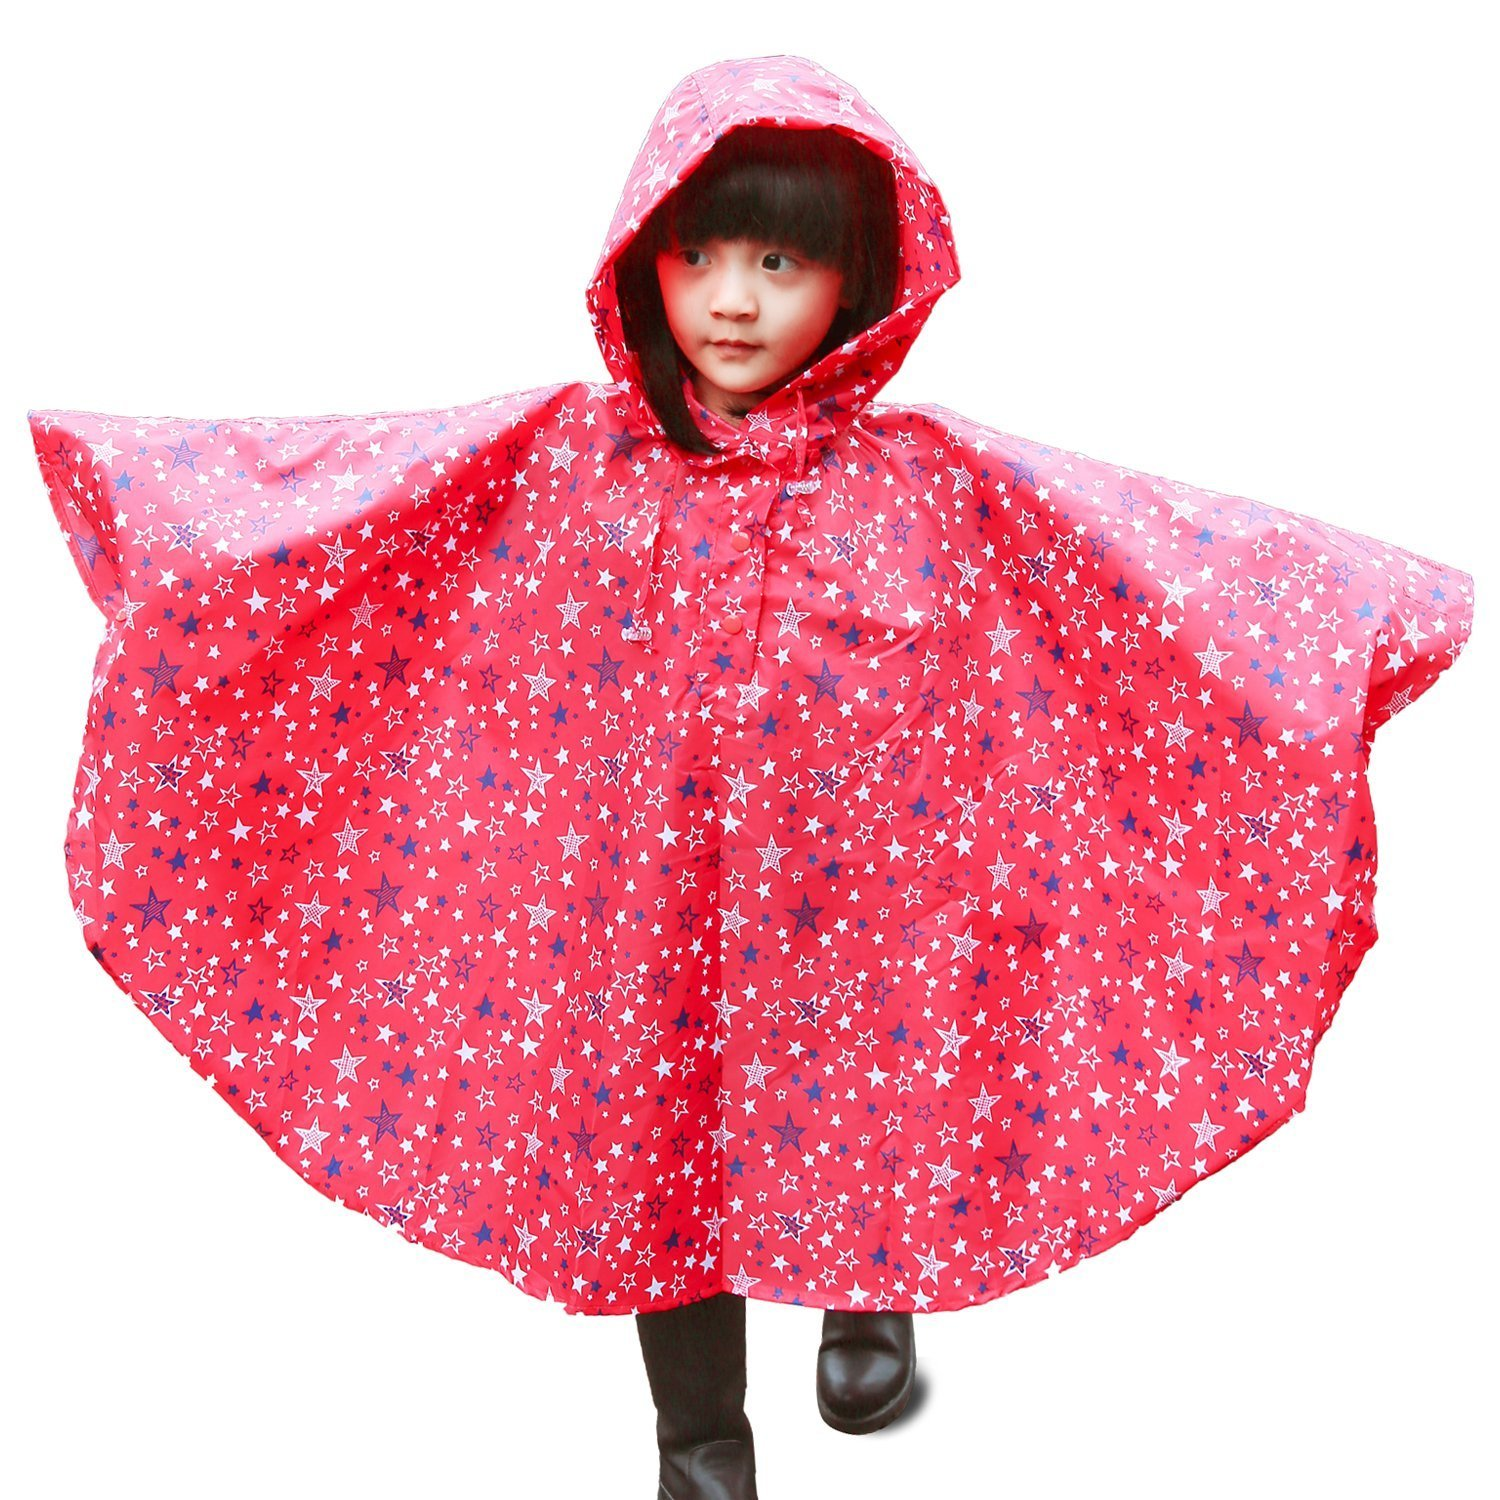 e-youth Children Hooded Rain Poncho Reusable Fashion Portable Lightweight Raincoat